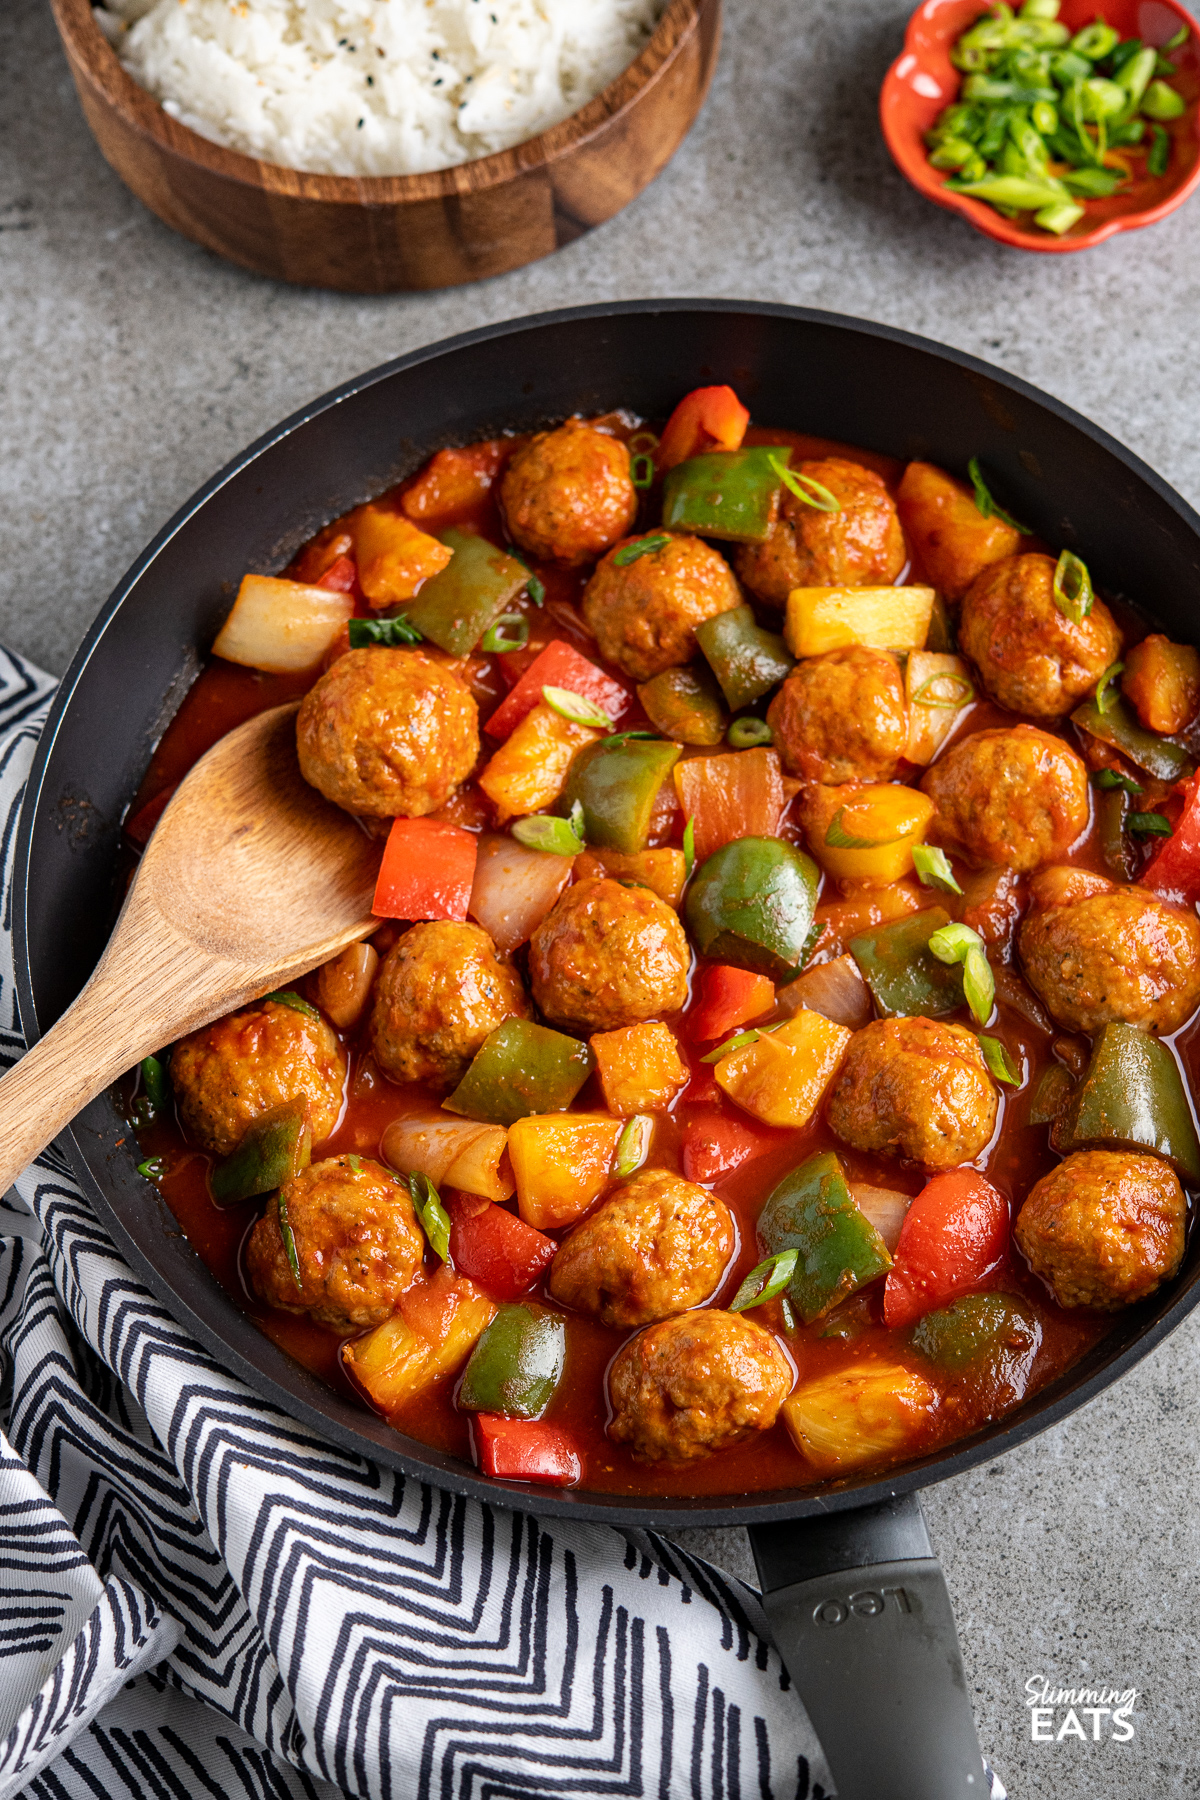 sweet and sour chicken meatballs in a black frying pan with vegetables, wooden bowl of jasmine rice in background and terracotta pinch bowl with spring onions